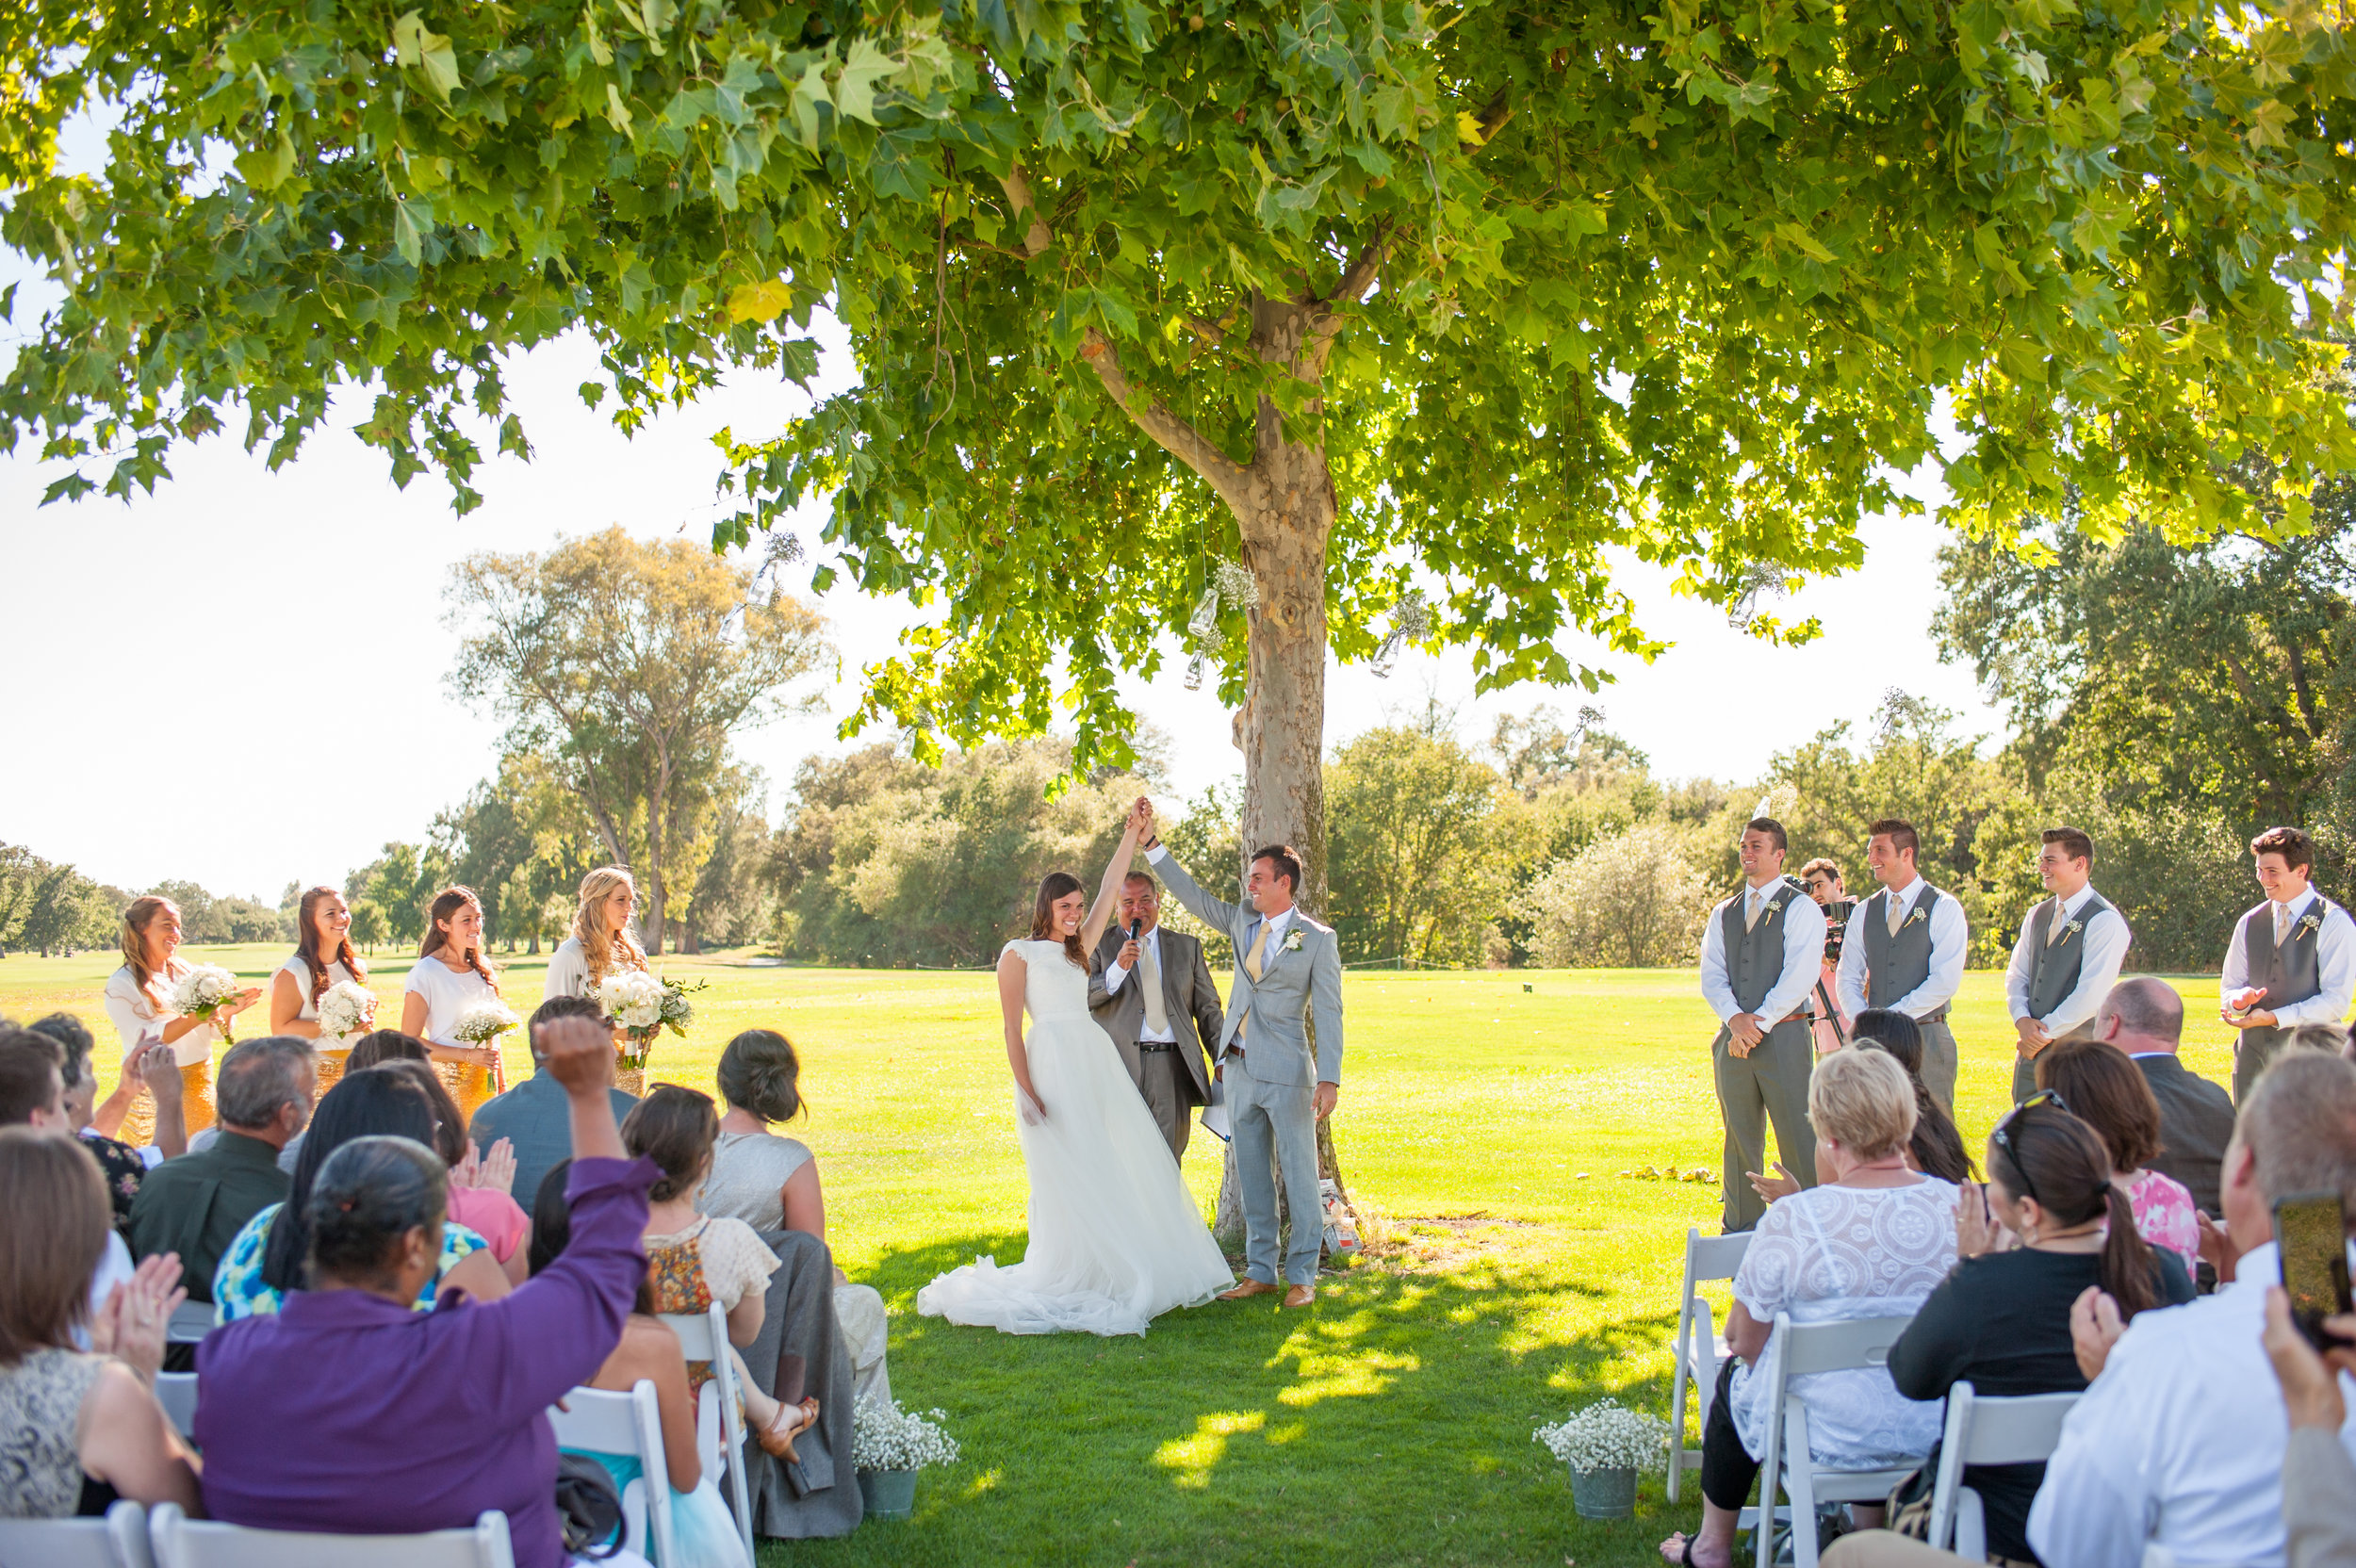 meghan-jonah-015-haggin-oaks-golf-course-sacramento-engagement-wedding-photographer-katherine-nicole-photography.JPG